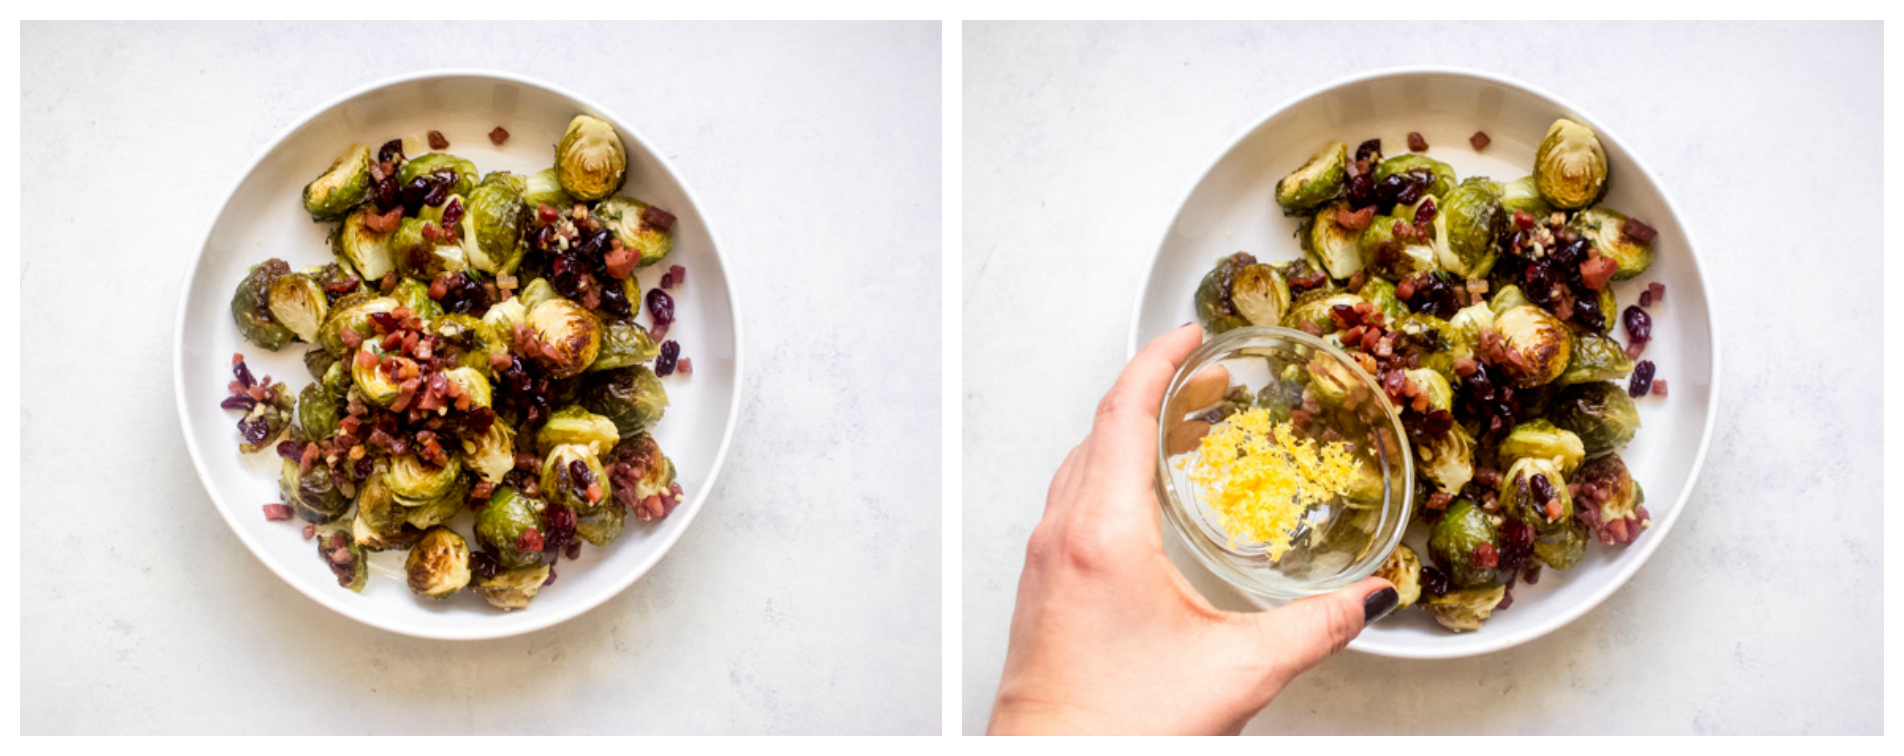 roasted brussel sprouts topped with lemon zest